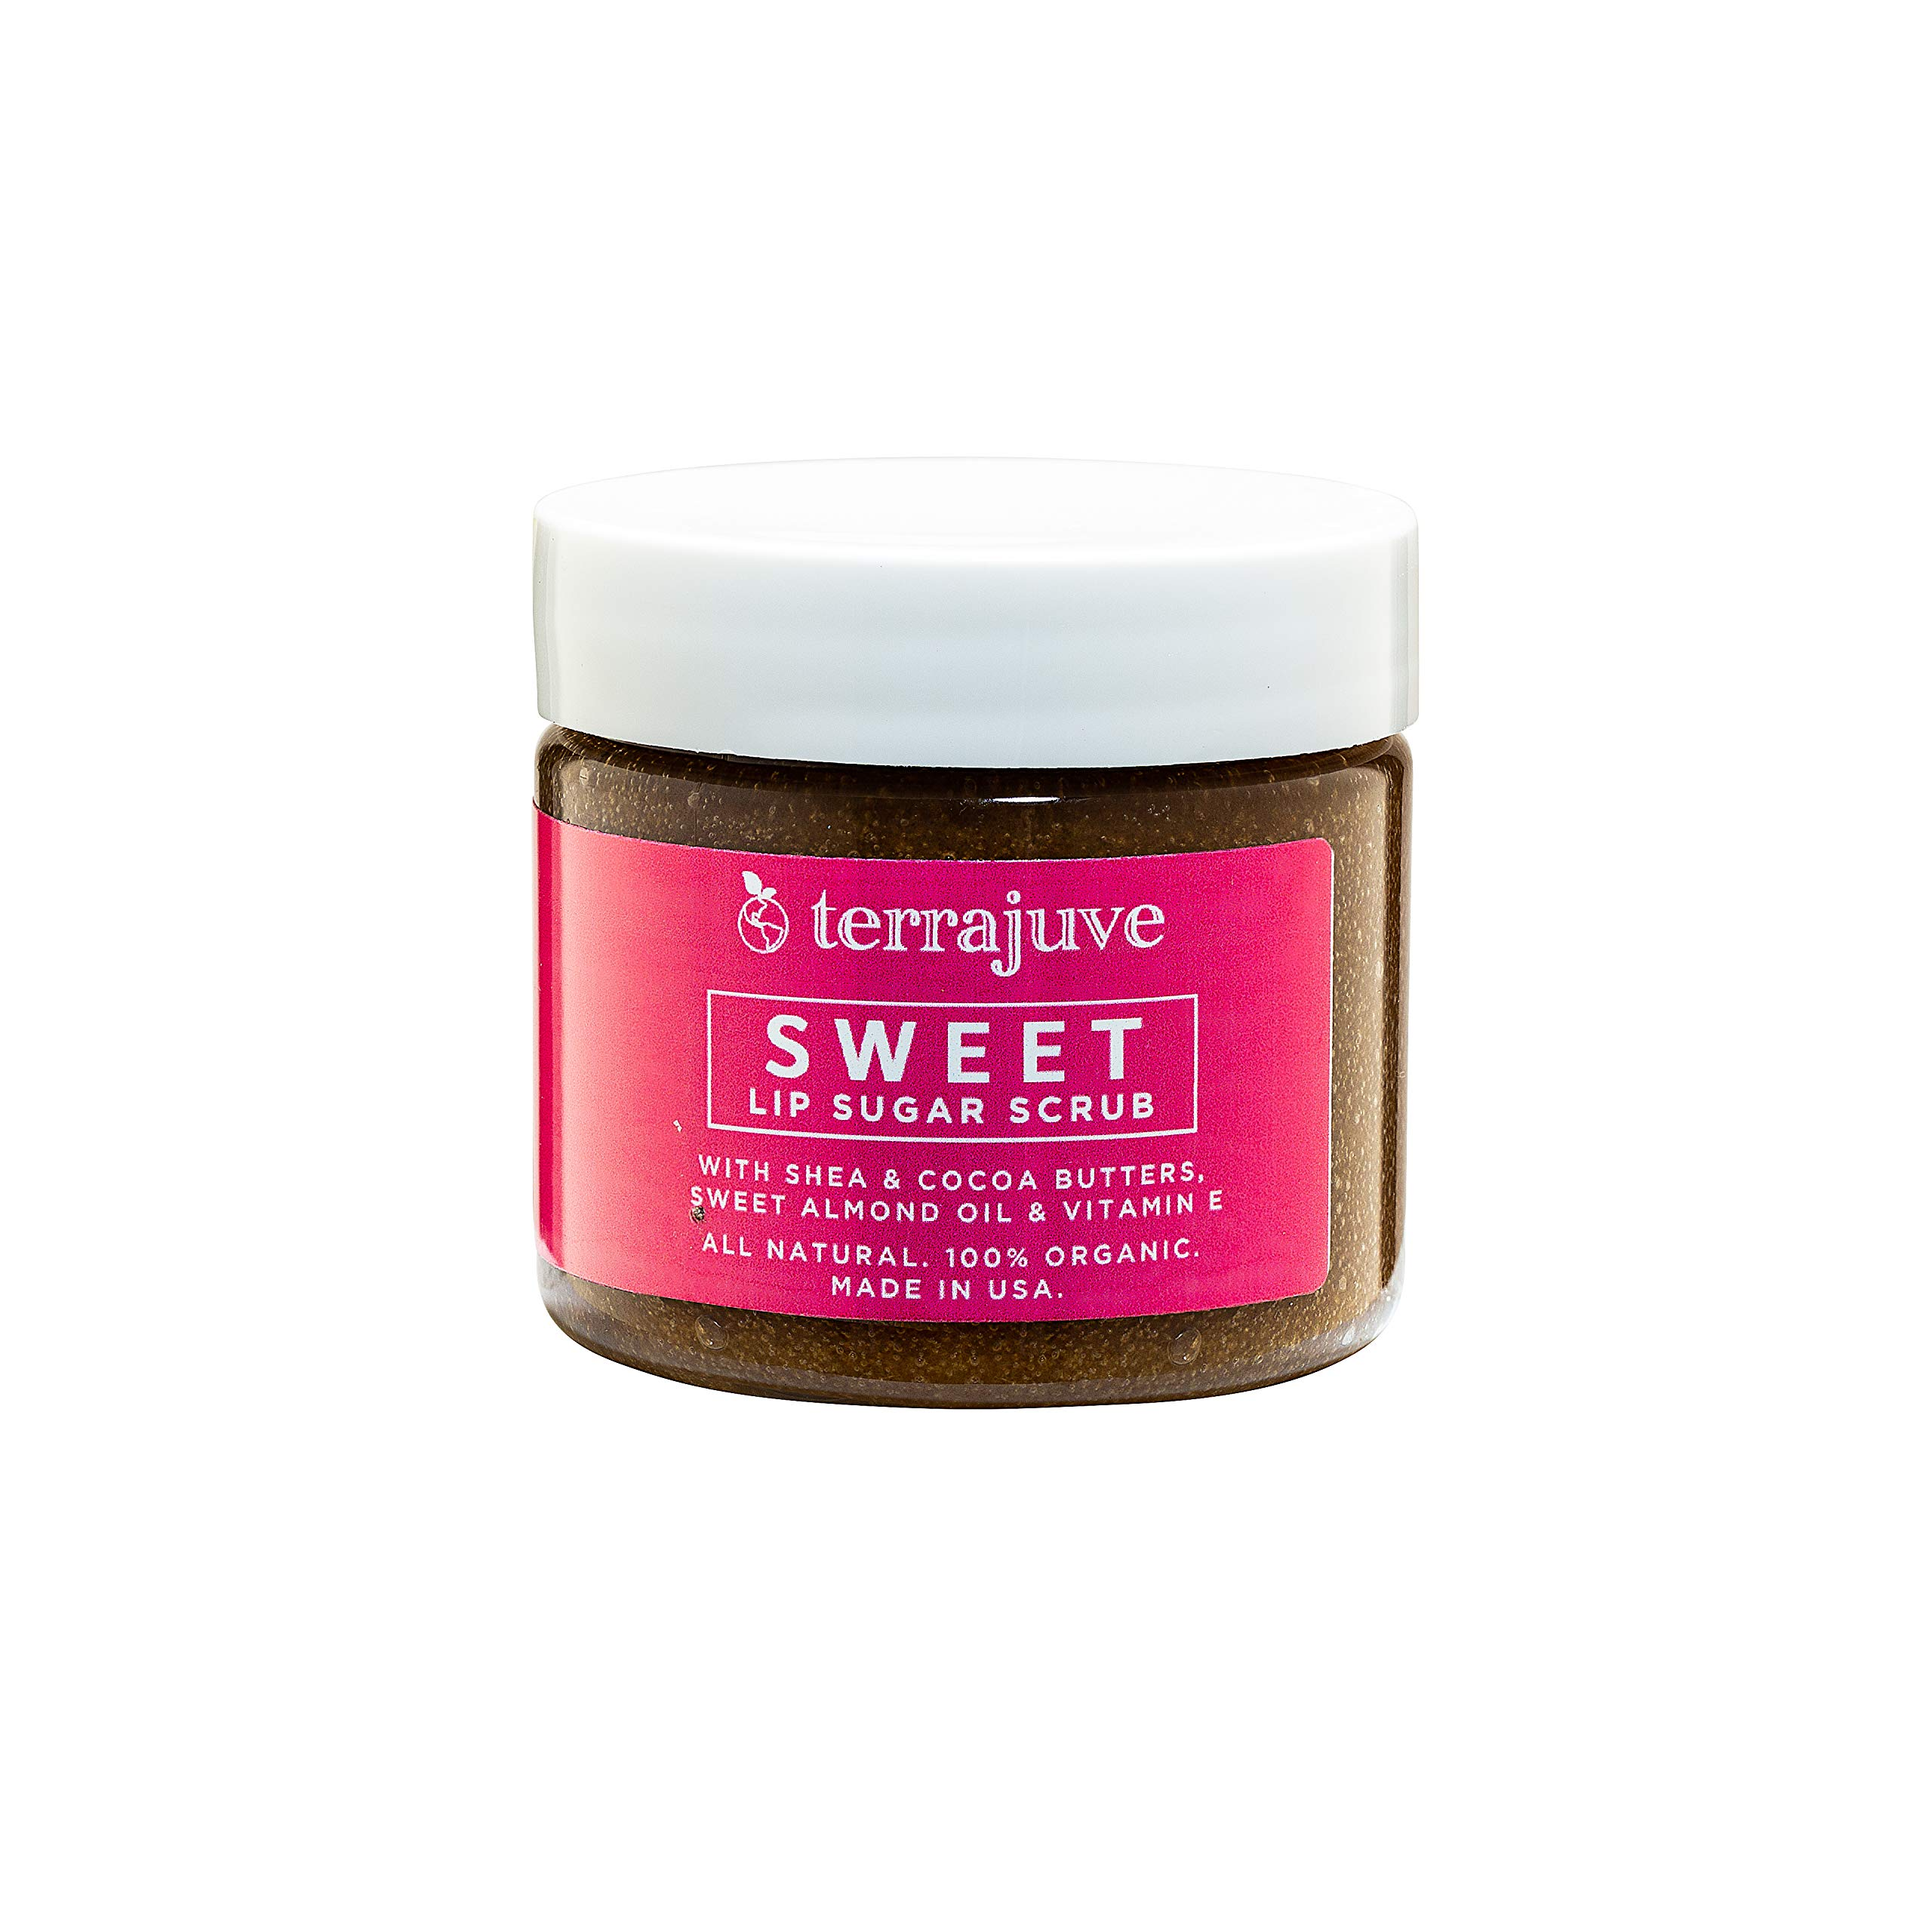 Sugar Lip Scrubs Treatment by Terrajuve, Lips Scrub Exfoliator and Moisturizer, with Shea and Cocoa Butter, Raw, Organic, Pure, All Natural, Made in USA by Terrajuve